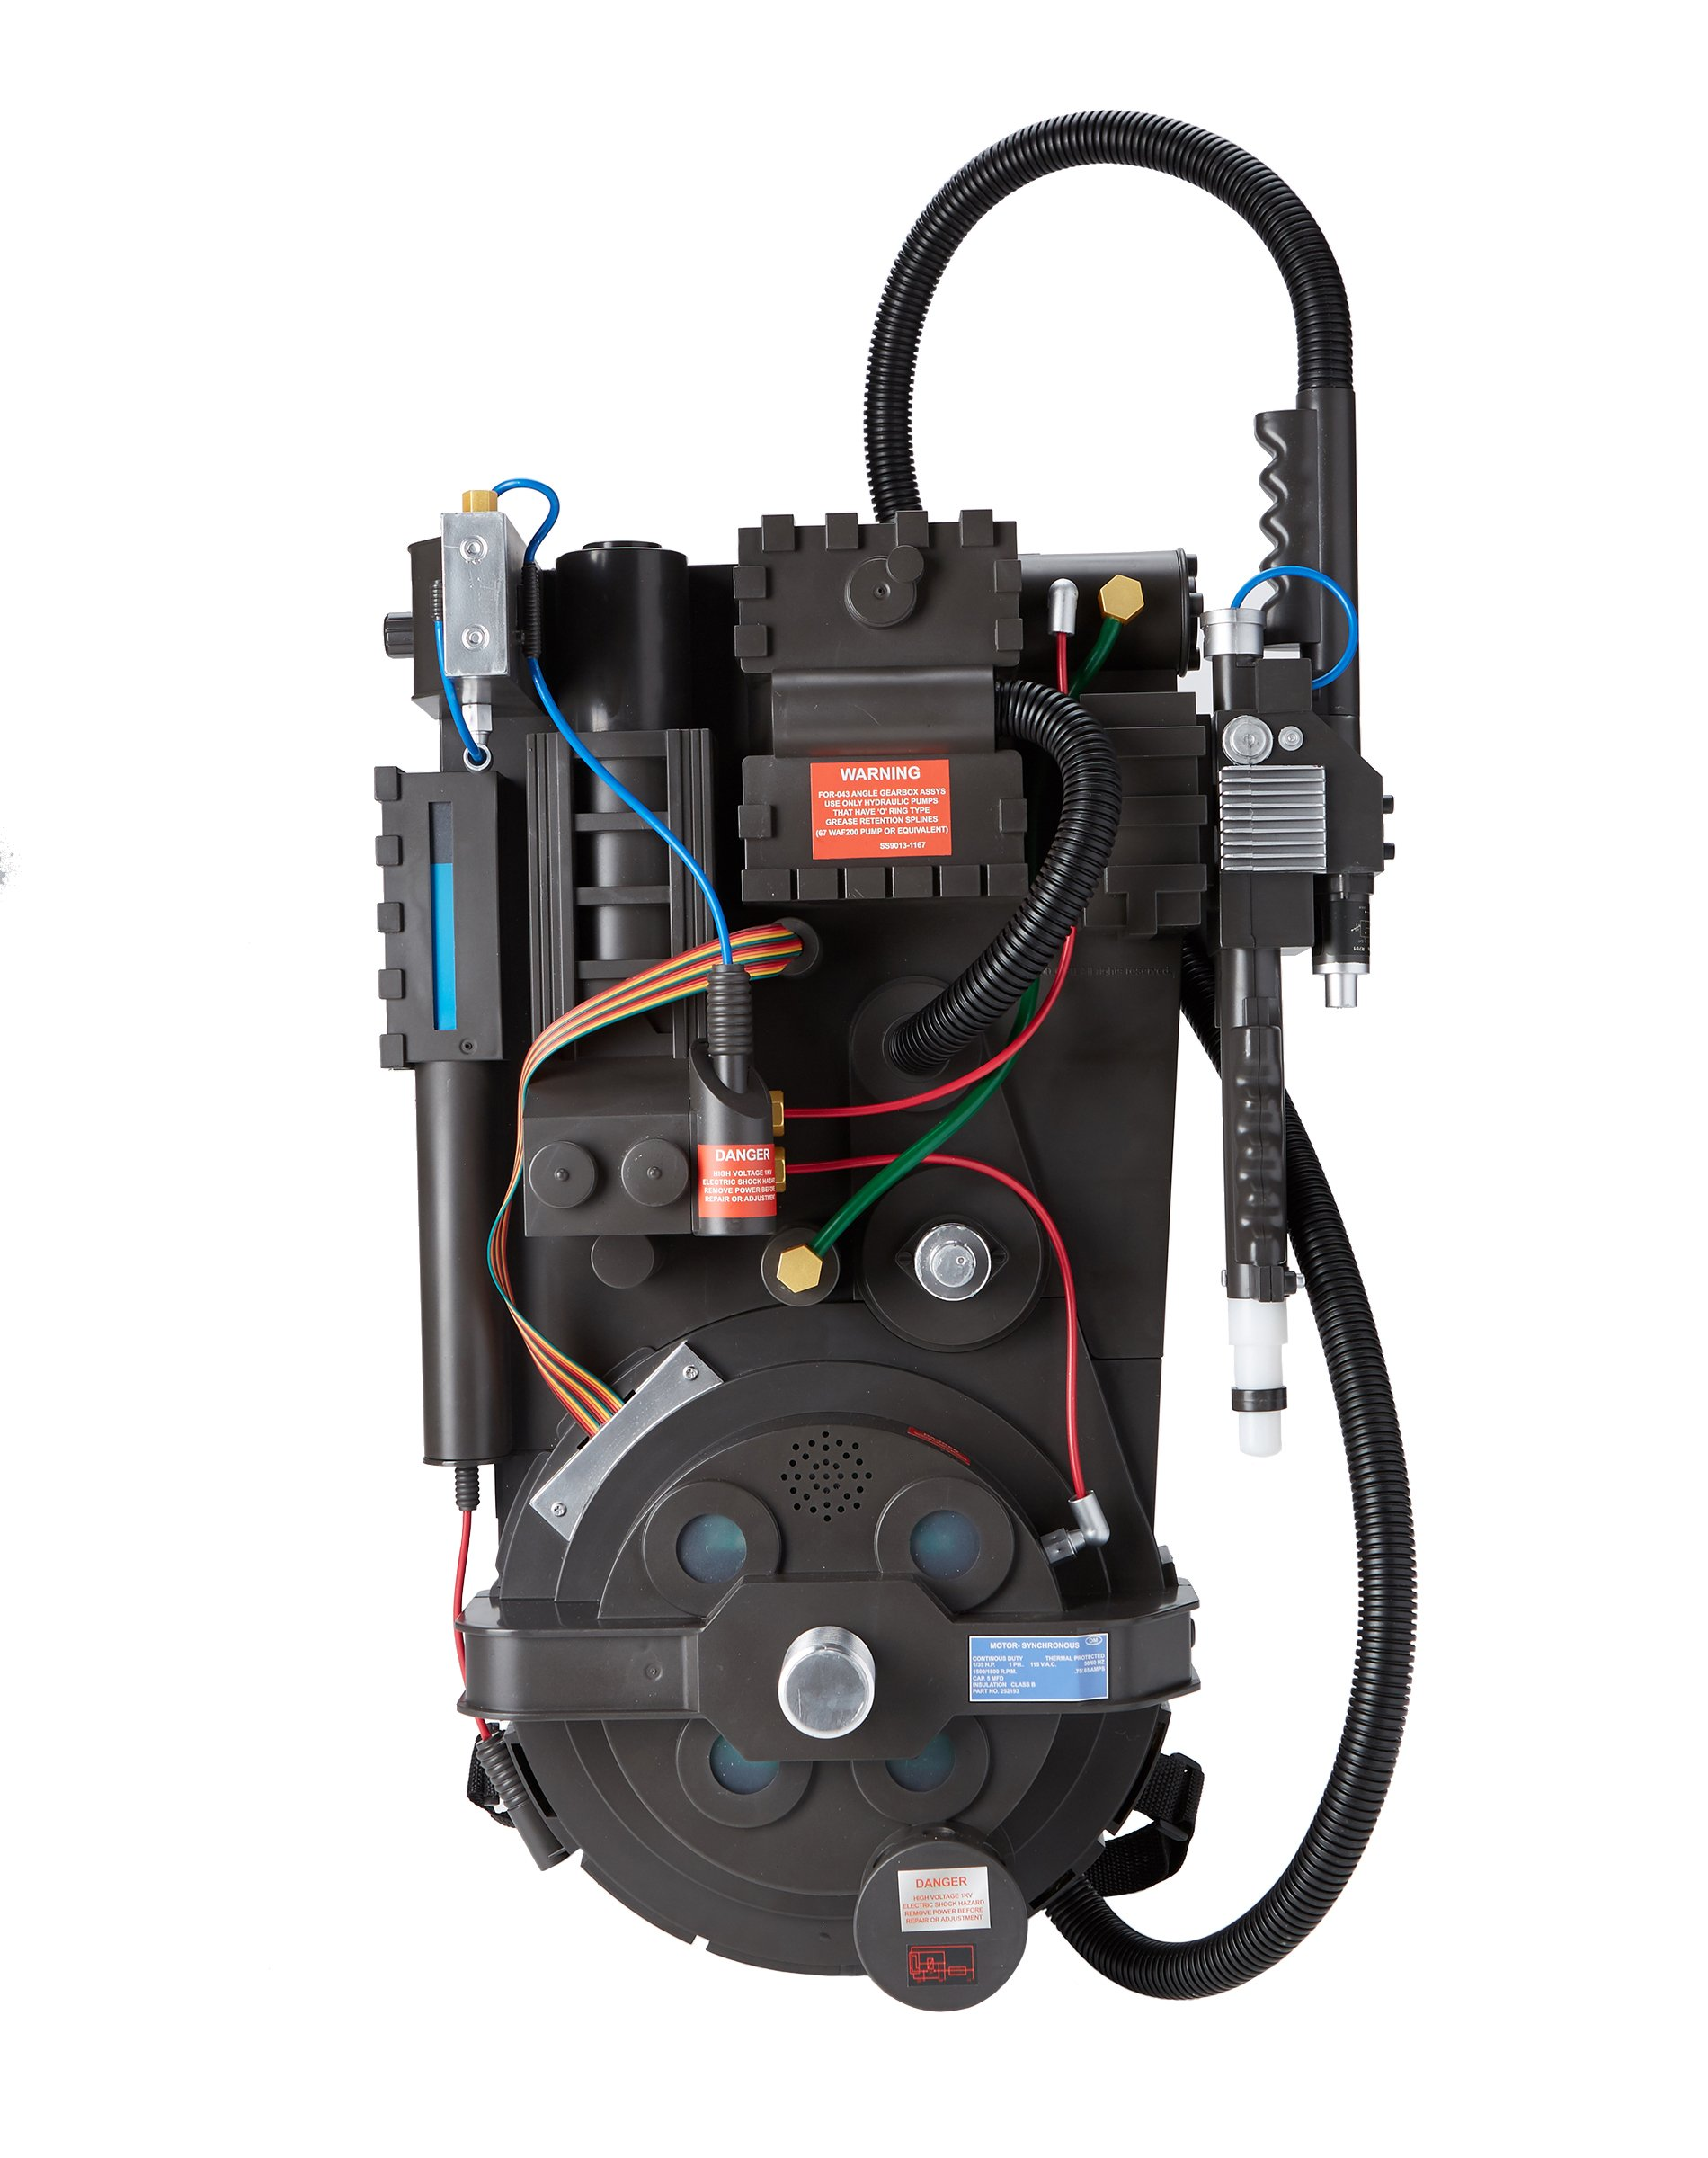 Spirit Halloween Ghostbusters Deluxe Replica Proton Pack | Officially Licensed by Spirit Halloween